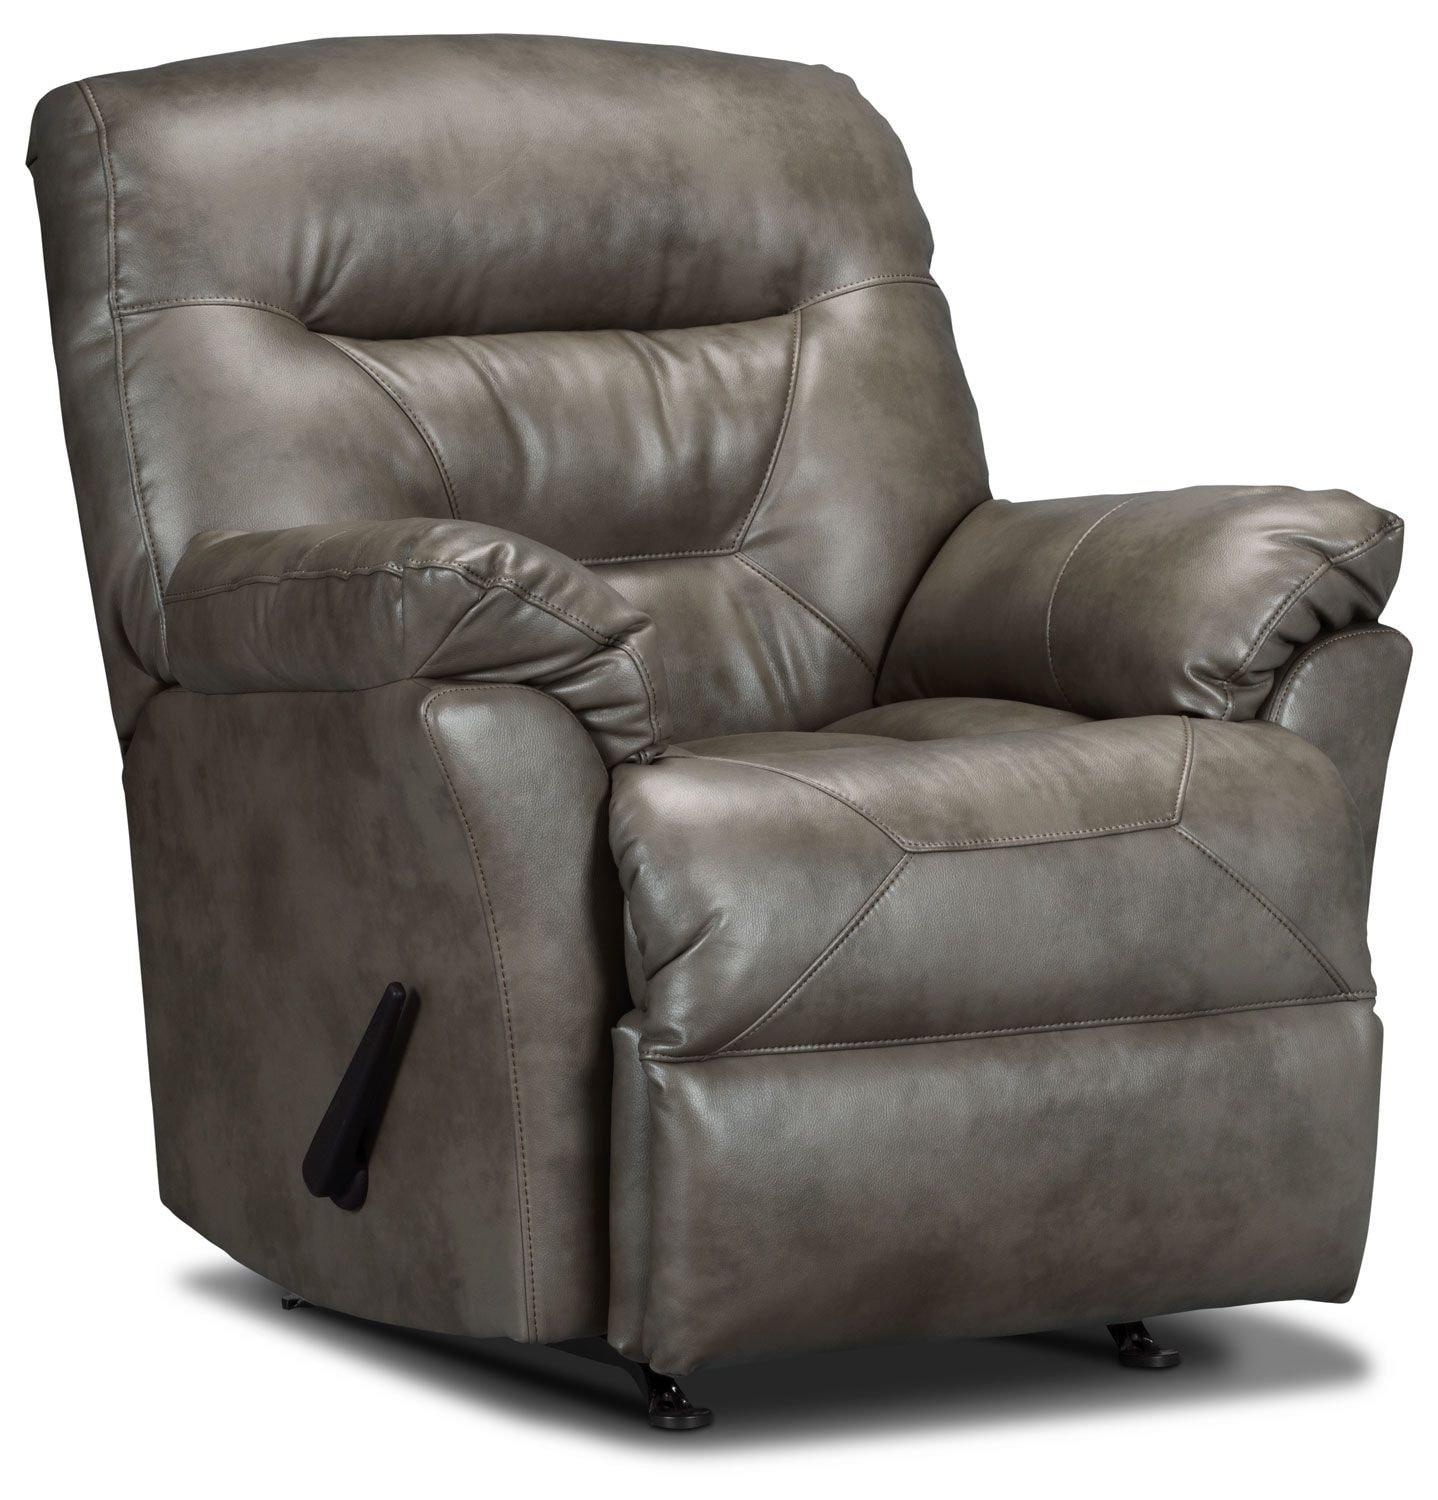 Designed2B Recliner 4579 Leather-Look Fabric Rocker Recliner - Smoke